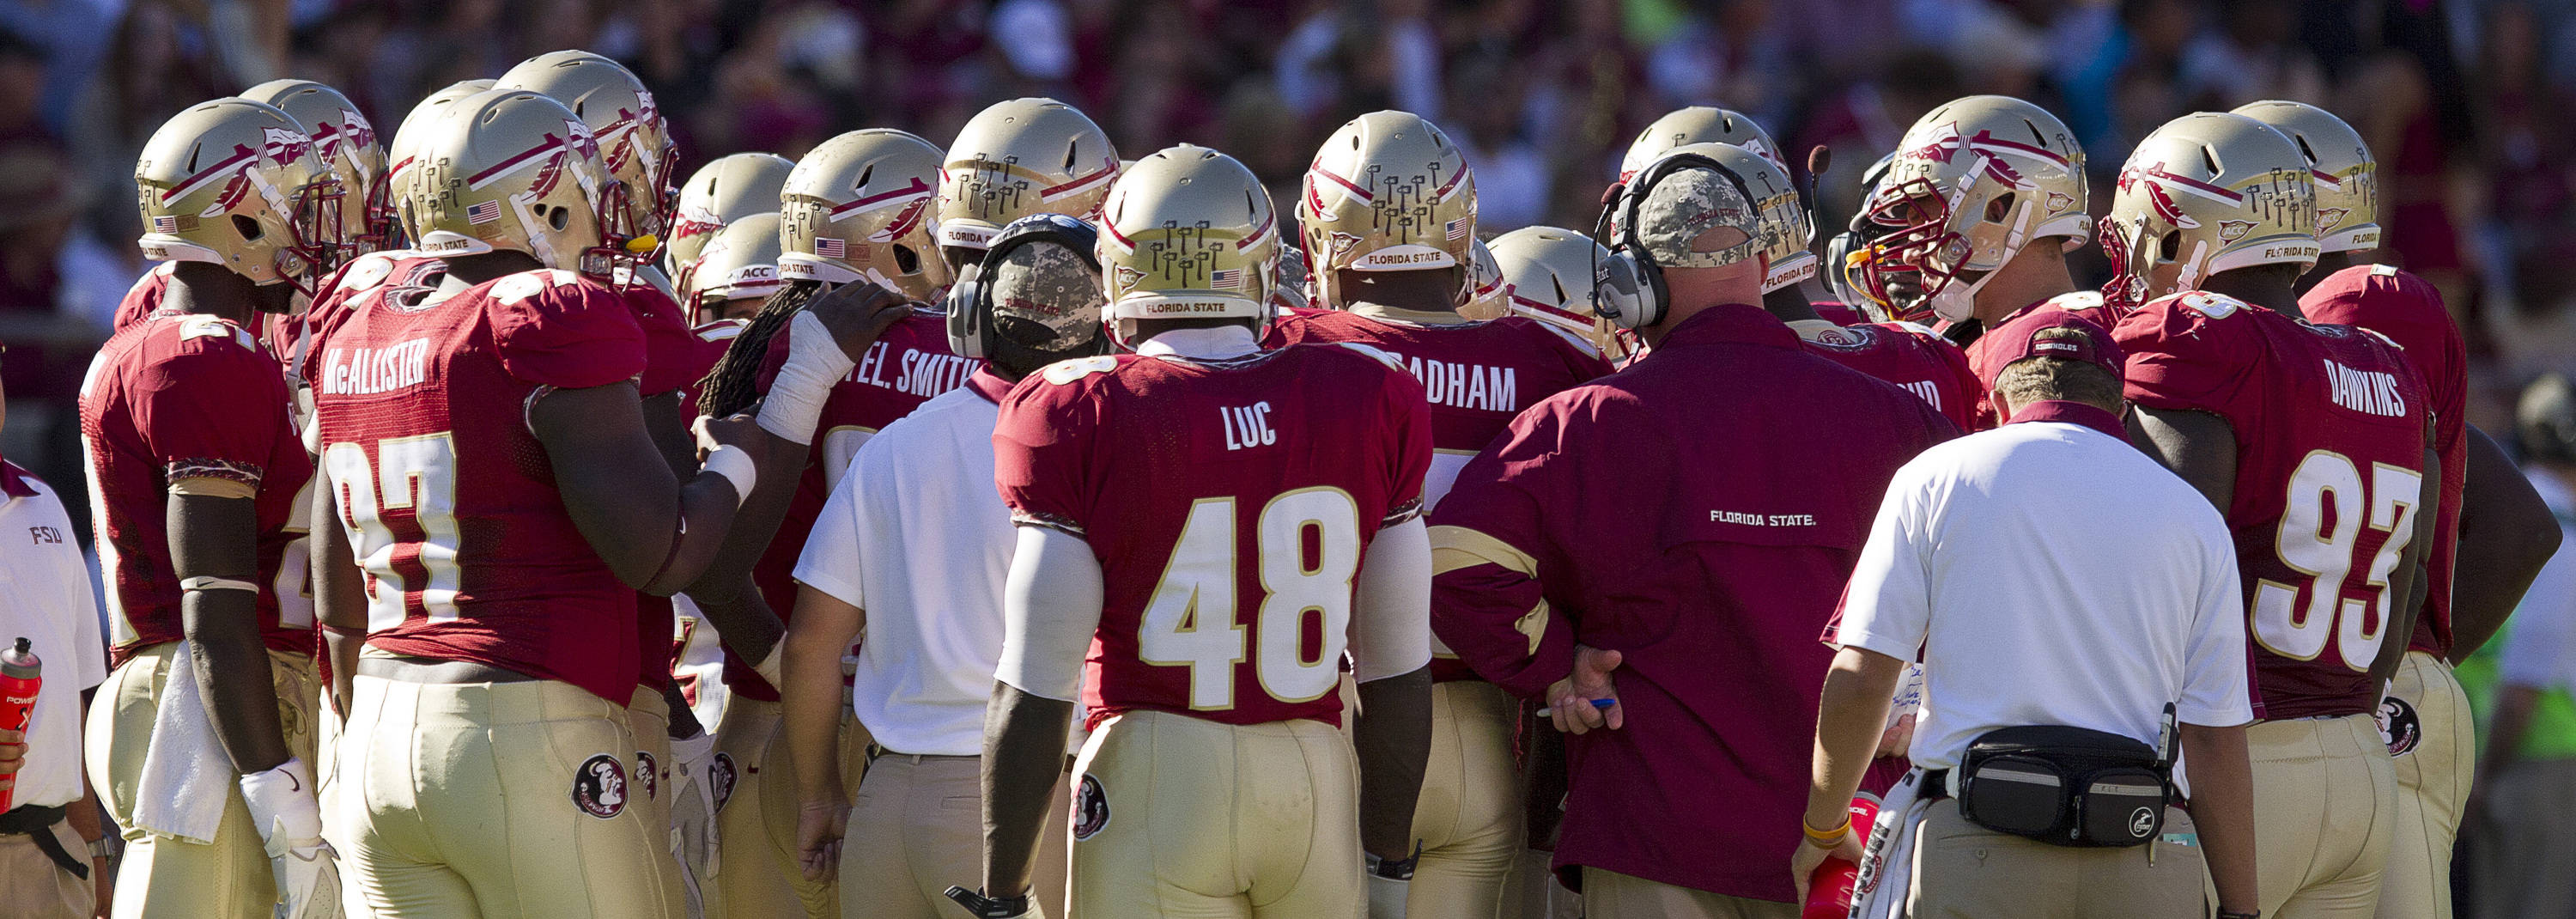 Jimbo Fisher talks to the team during a timeout during the football game against Maryland in Tallahassee, Florida on October 22, 2011.